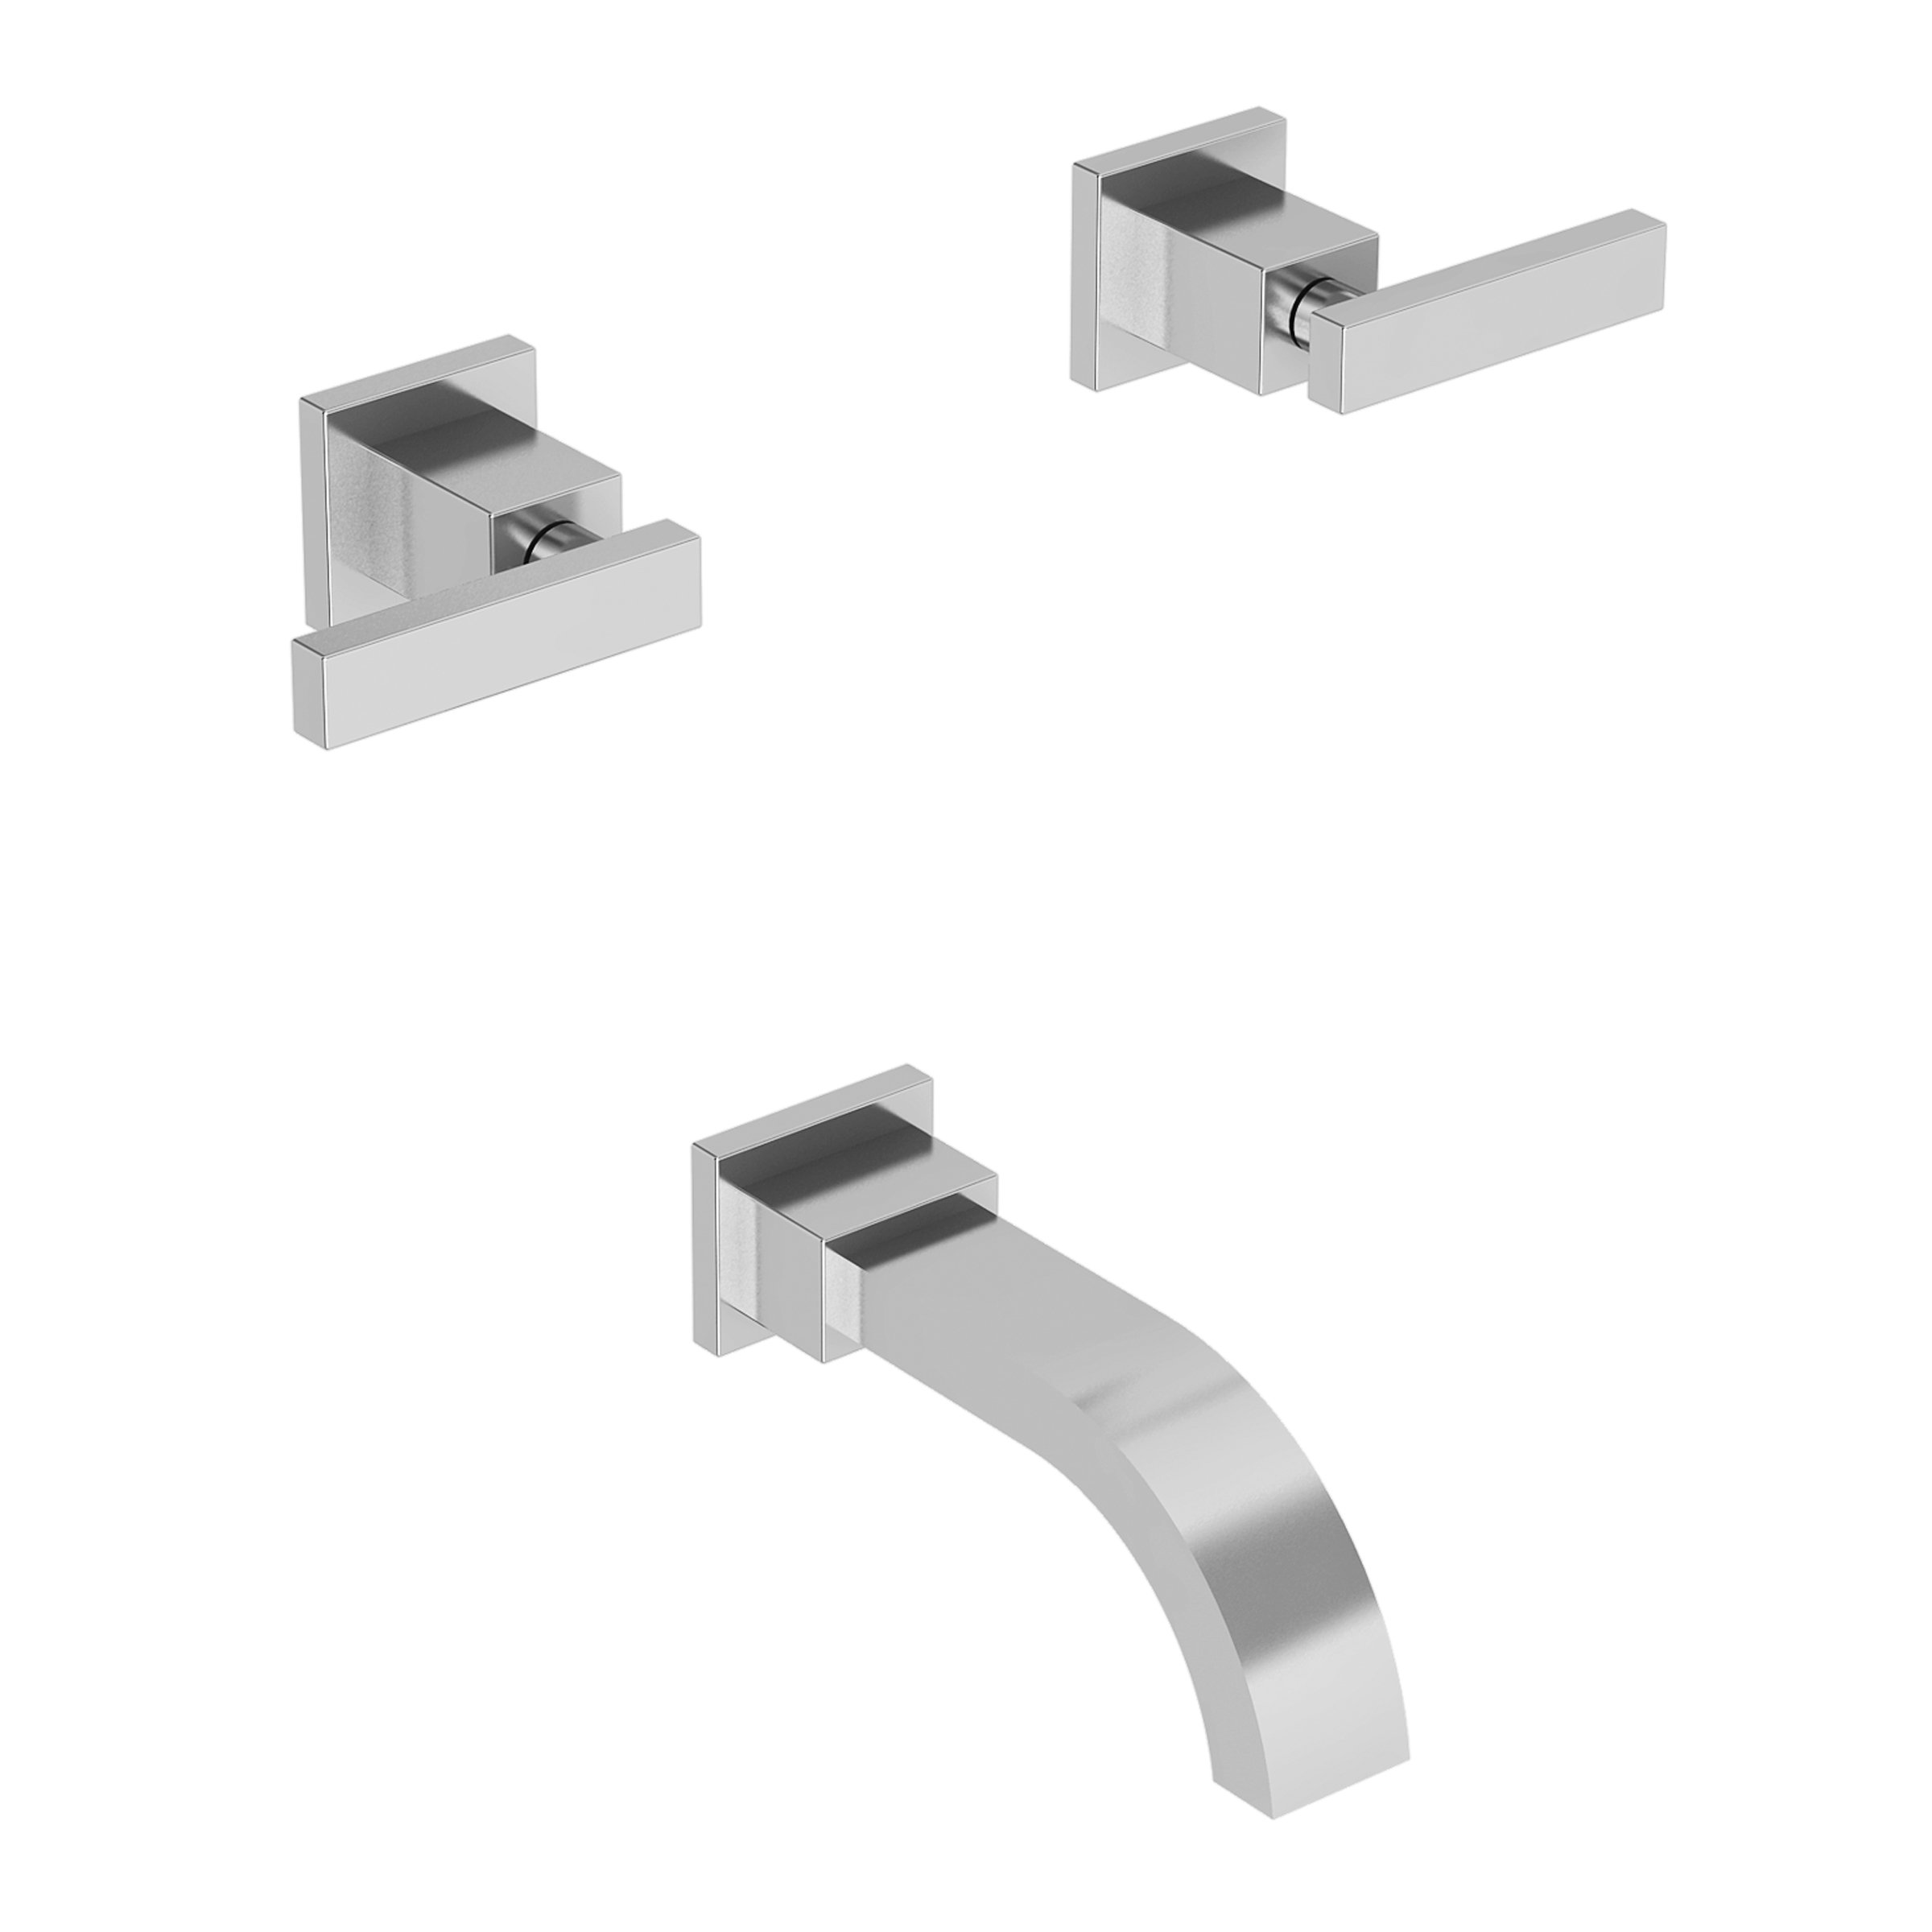 Newport Brass 3 2045 Wall Mounted Tub Trim Kit Home By Decor